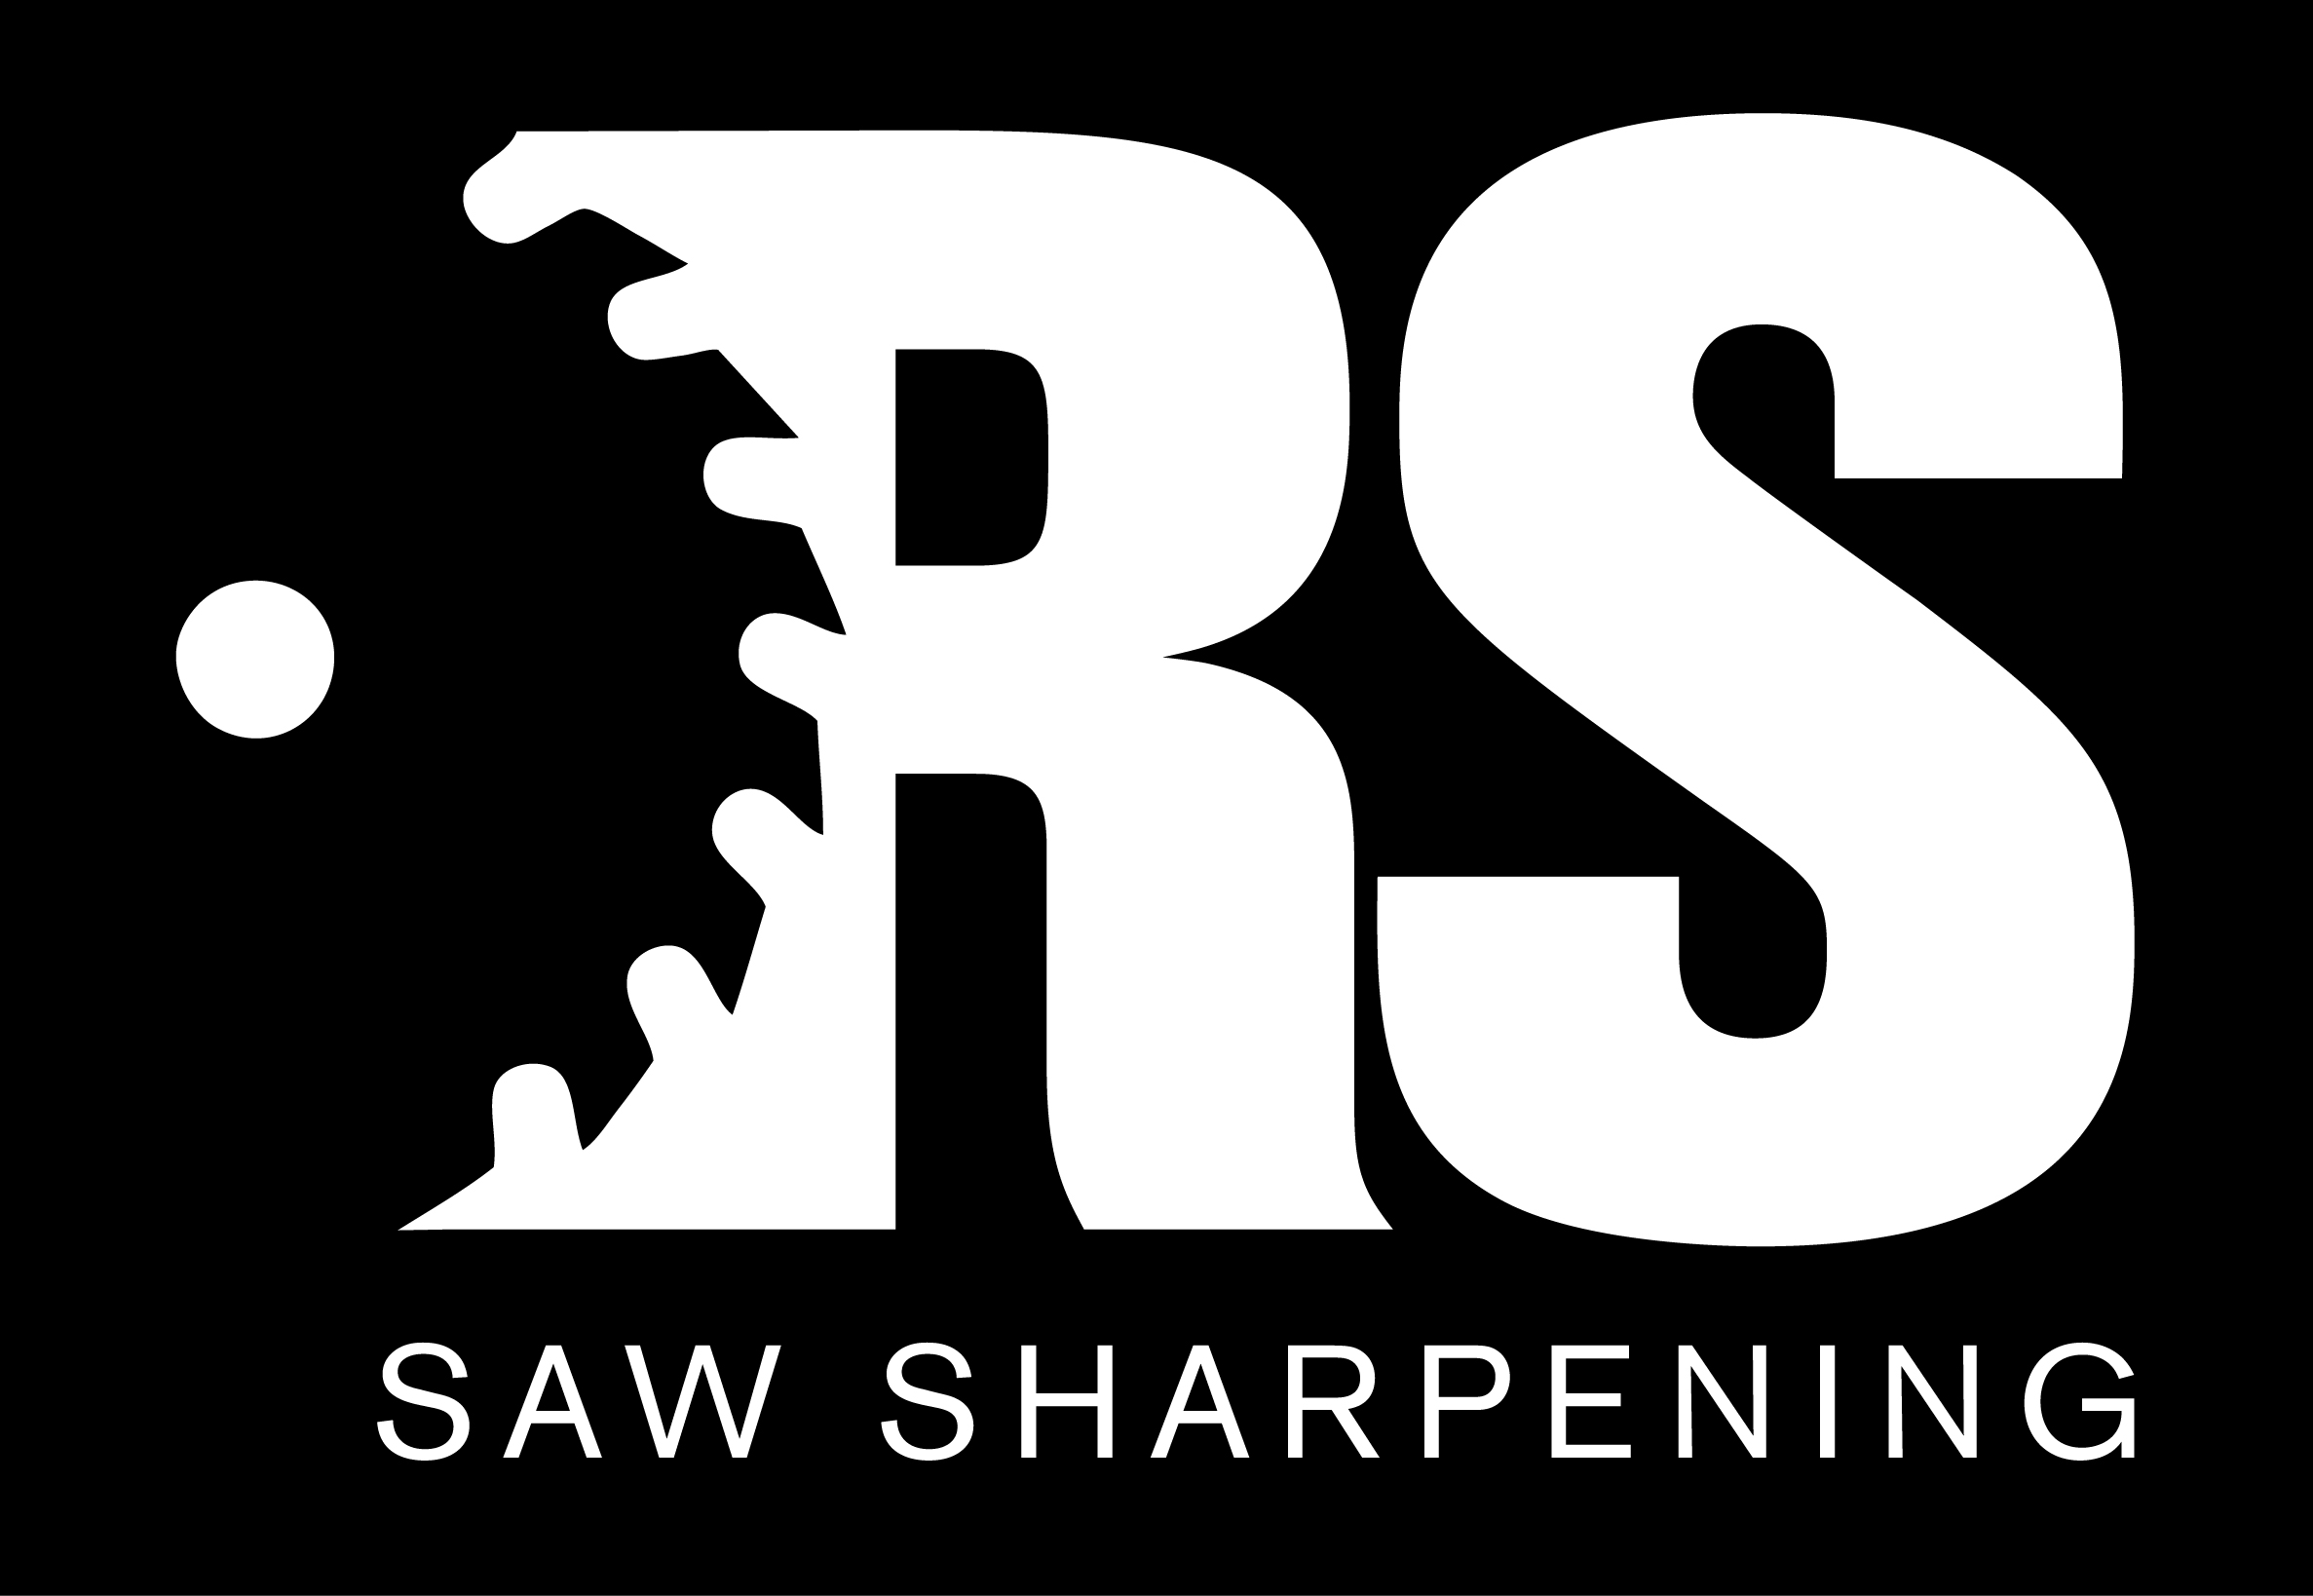 Sponsors information leicester forest rfc r s saw sharpening buycottarizona Image collections